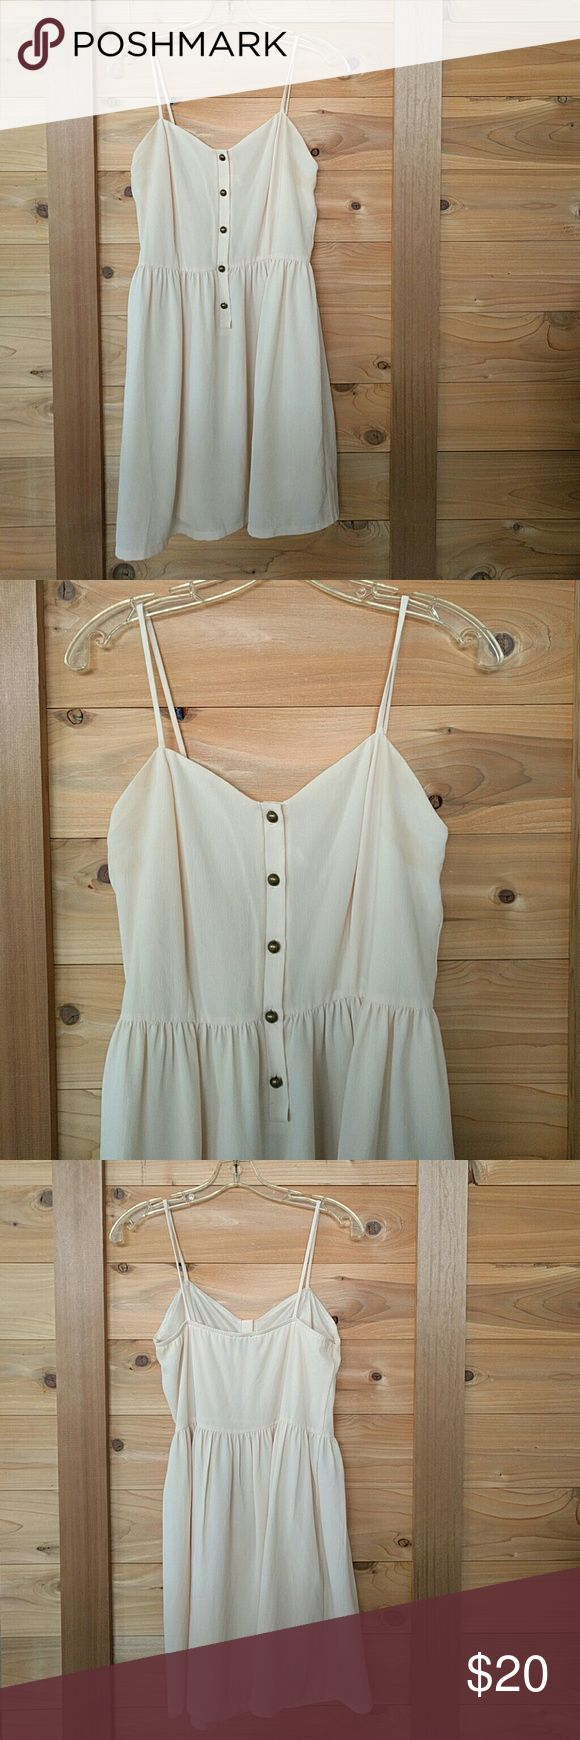 Simple is Best Cream Summer Dress w Brass Buttons Audrey 3+1 brand. Fiber content is crepe polyester. Very nicely lined. On the smaller side of medium, probably a medium junior. Audrey 3+1 Dresses Mini